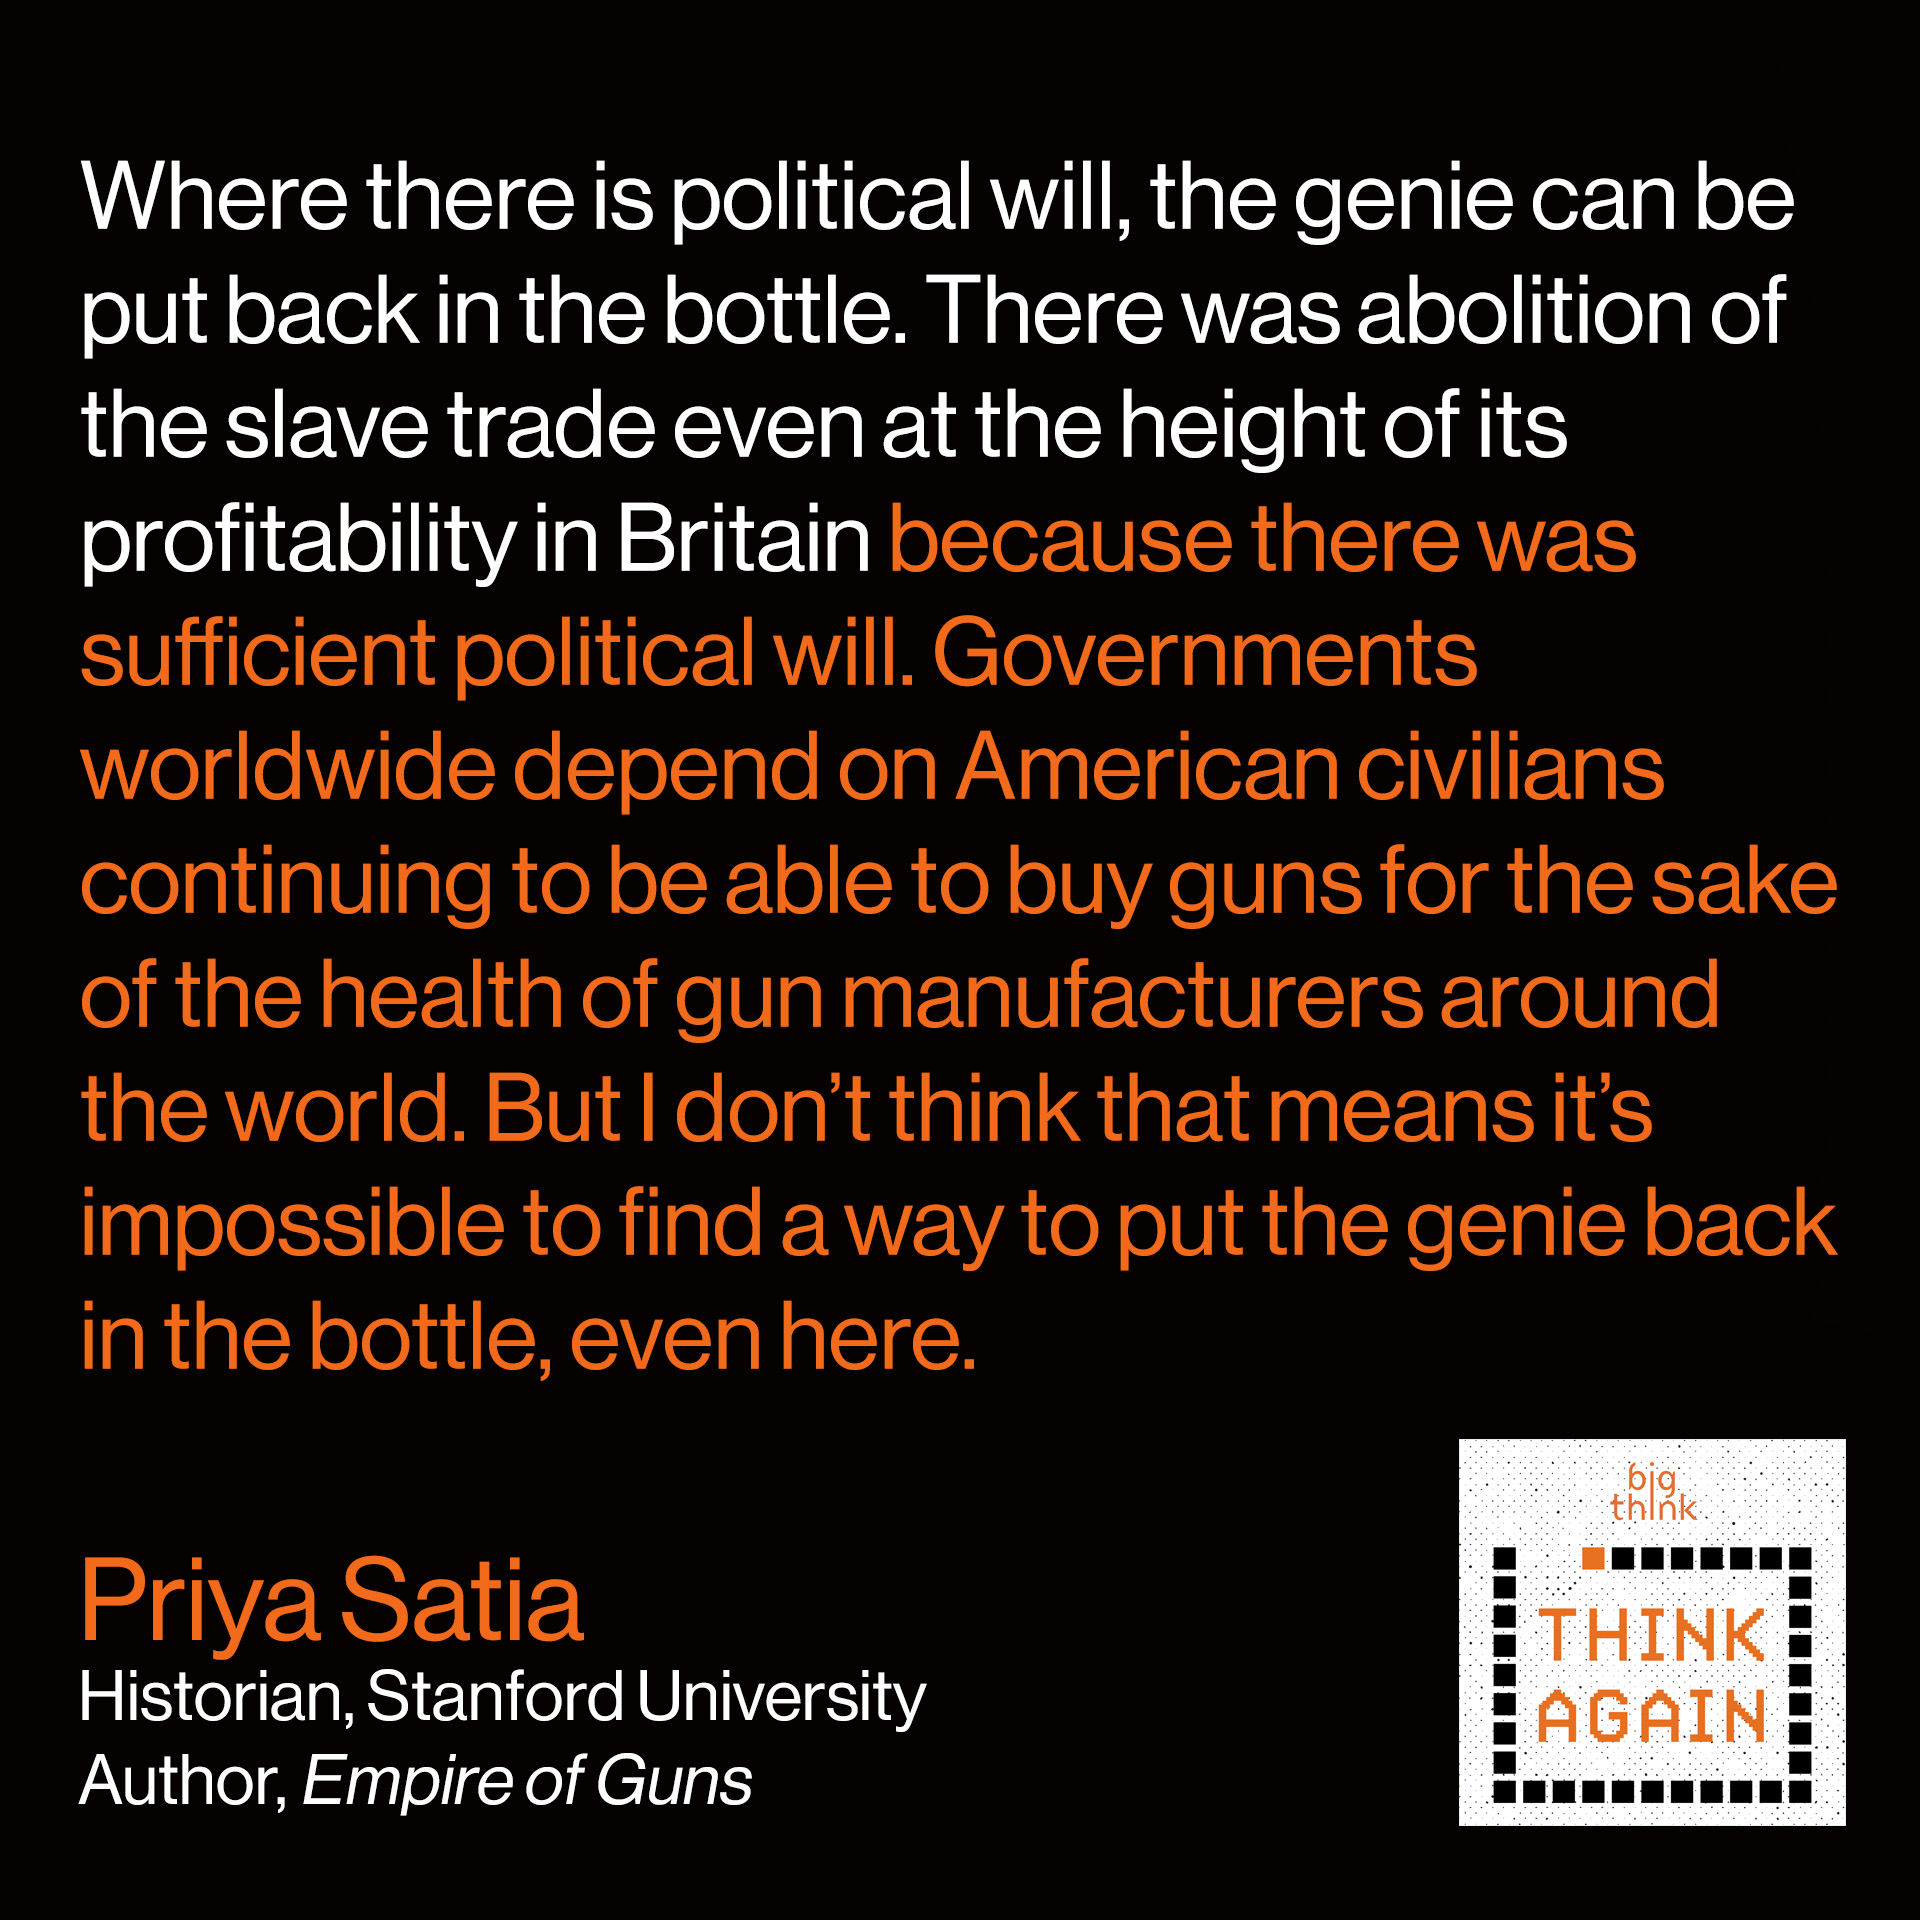 Priya Satia Quote: Where there is political will, the genie can be put back in the bottle. There was abolition of the slave trade even at the height of its profitability in Britain because there was sufficient political will. Governments worldwide depend on American civilians continuing to be able to buy guns for the sake of the health of gun manufacturers around the world. But I don't think that means it's impossible to find a way to put the genie back in the bottle, even here.